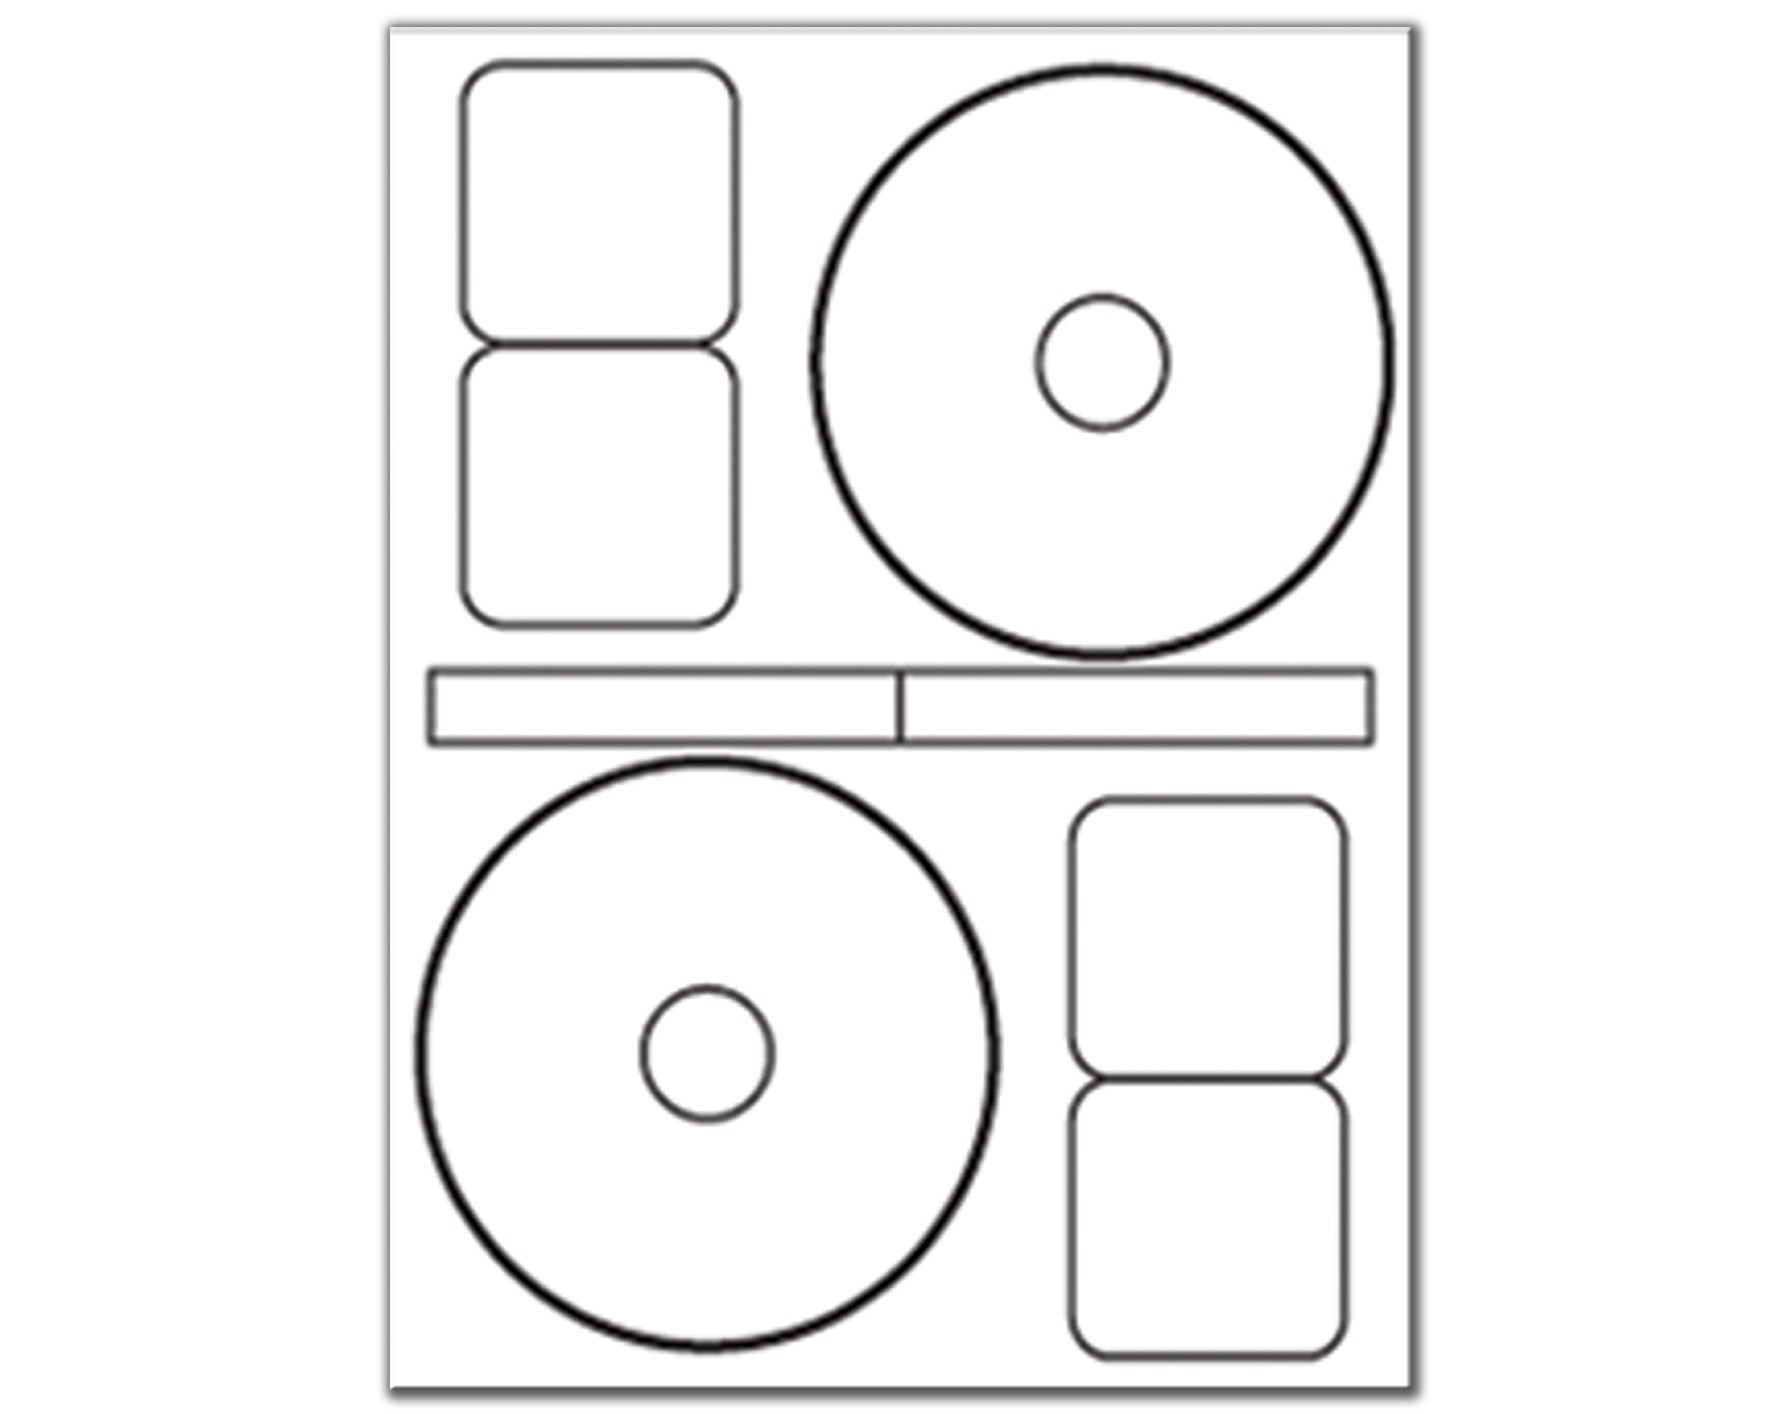 Stomper cd dvd labels 2 up 1 package cd dvd labels for Cd stomper 2 up standard with center labels template